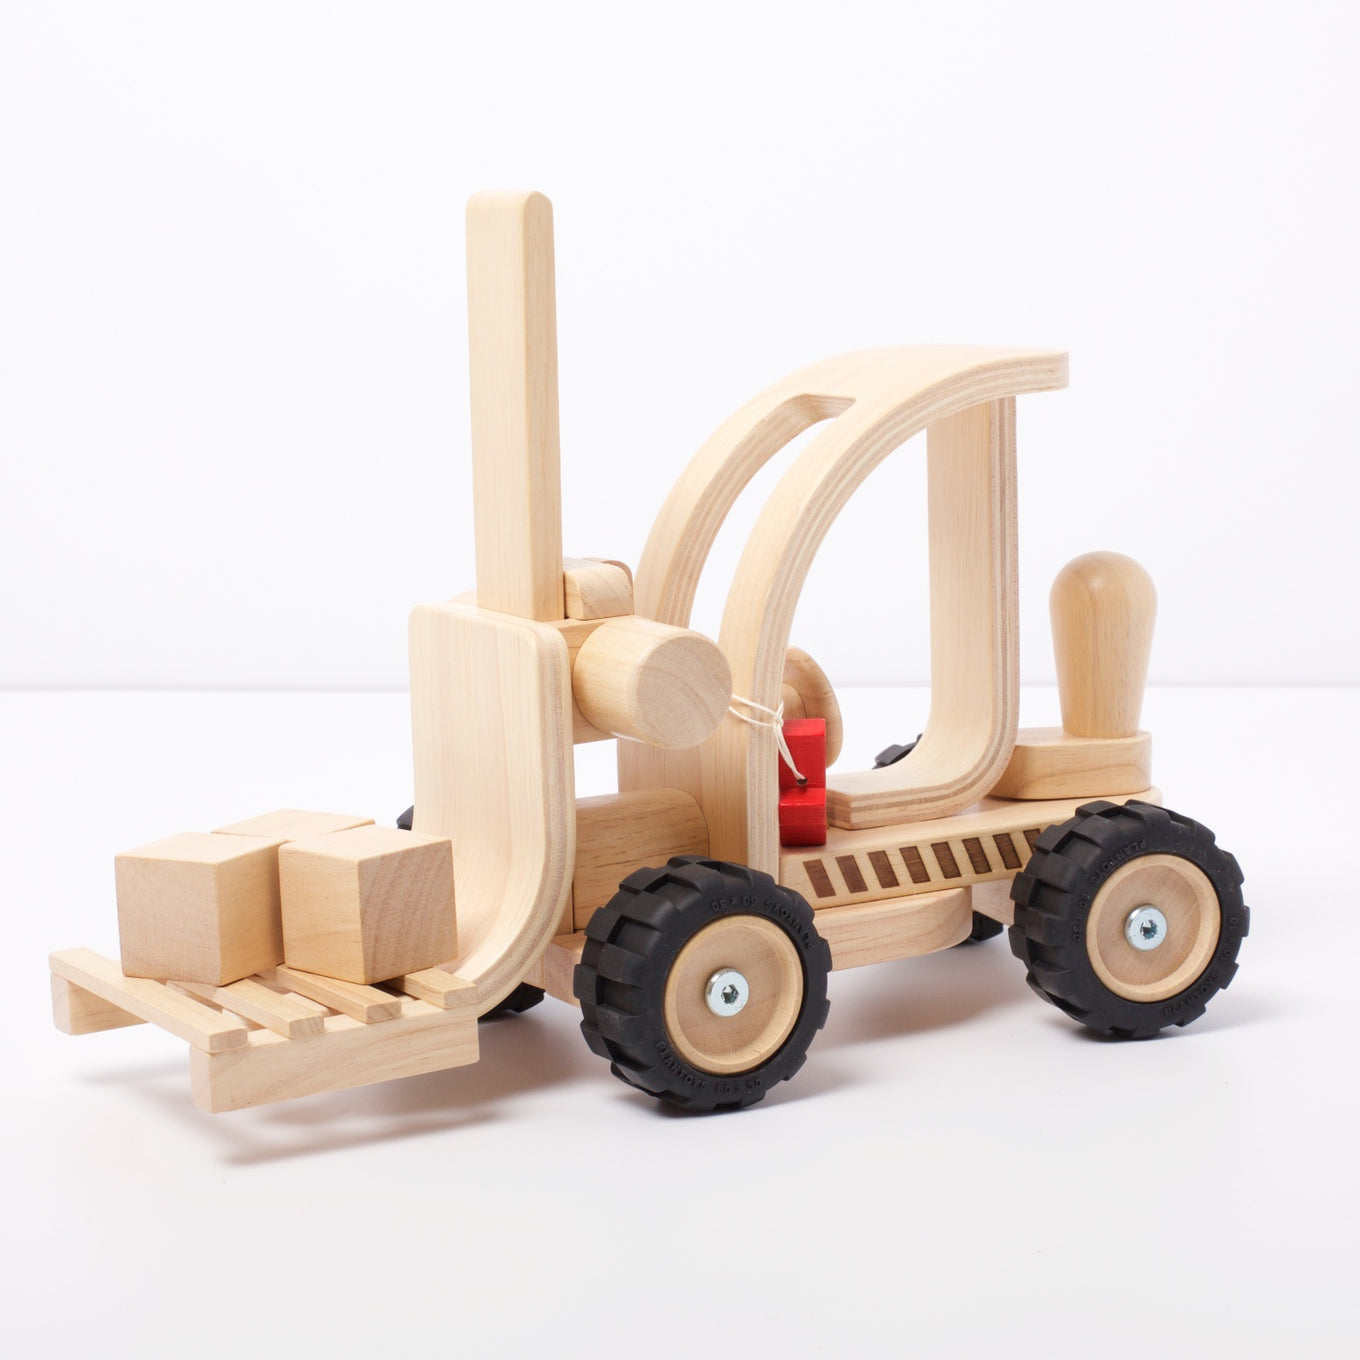 plan toys forklift limited edition | conscious craft